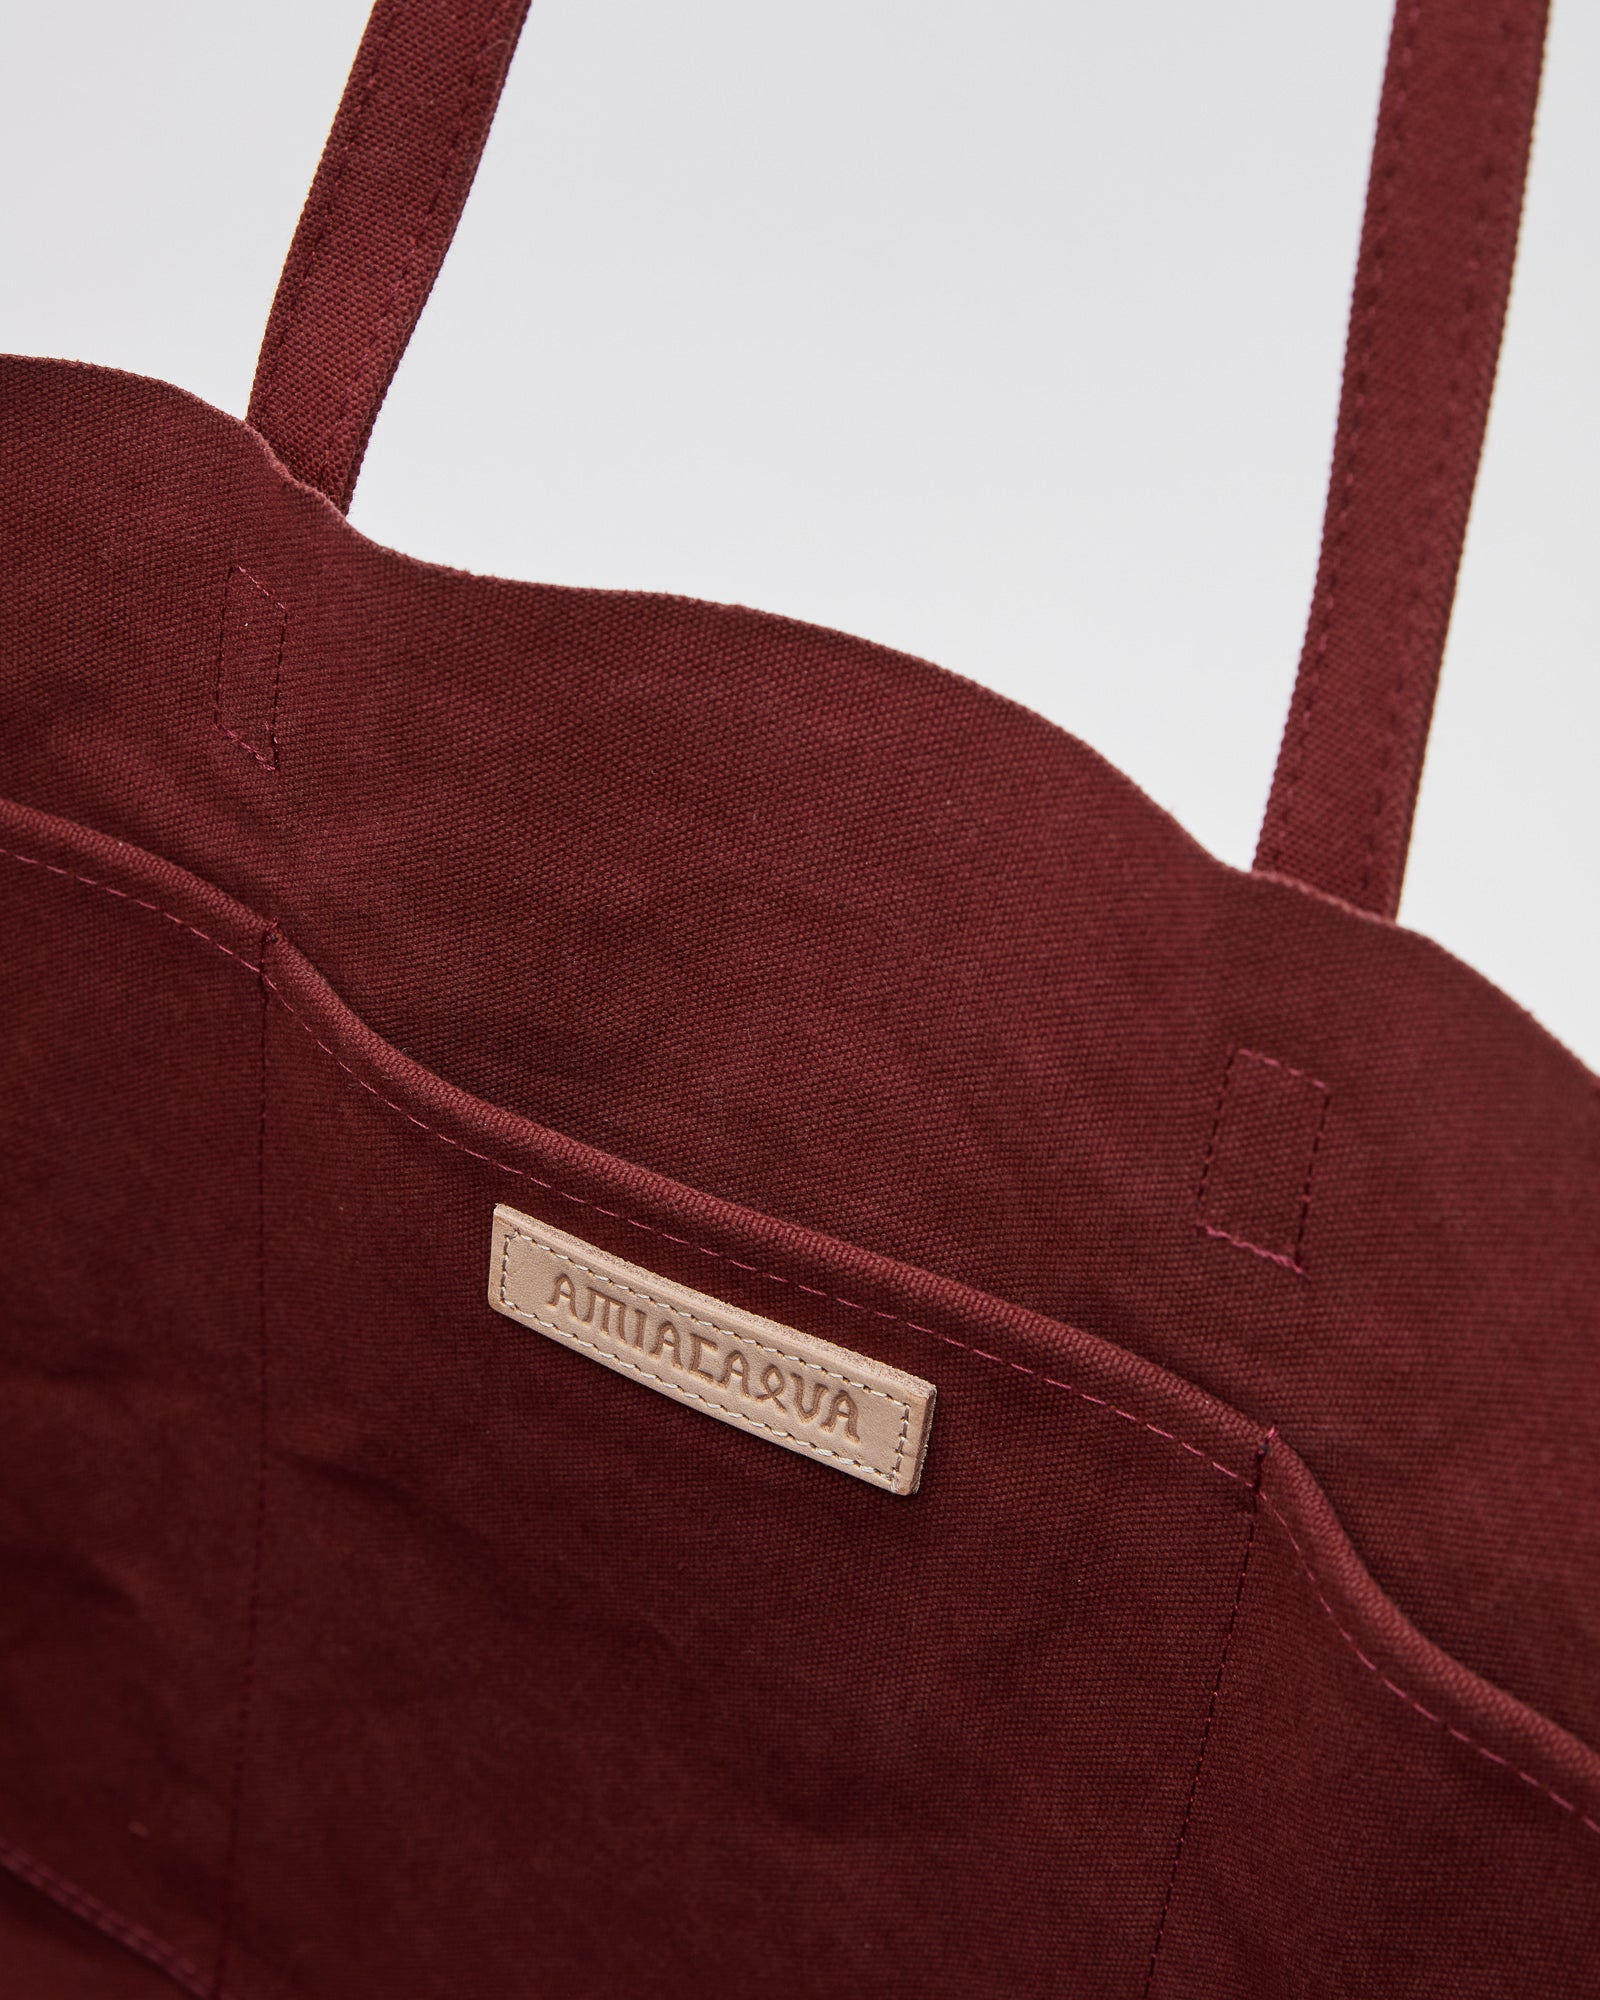 Washed Canvas 6P Tote in Burgundy (M)